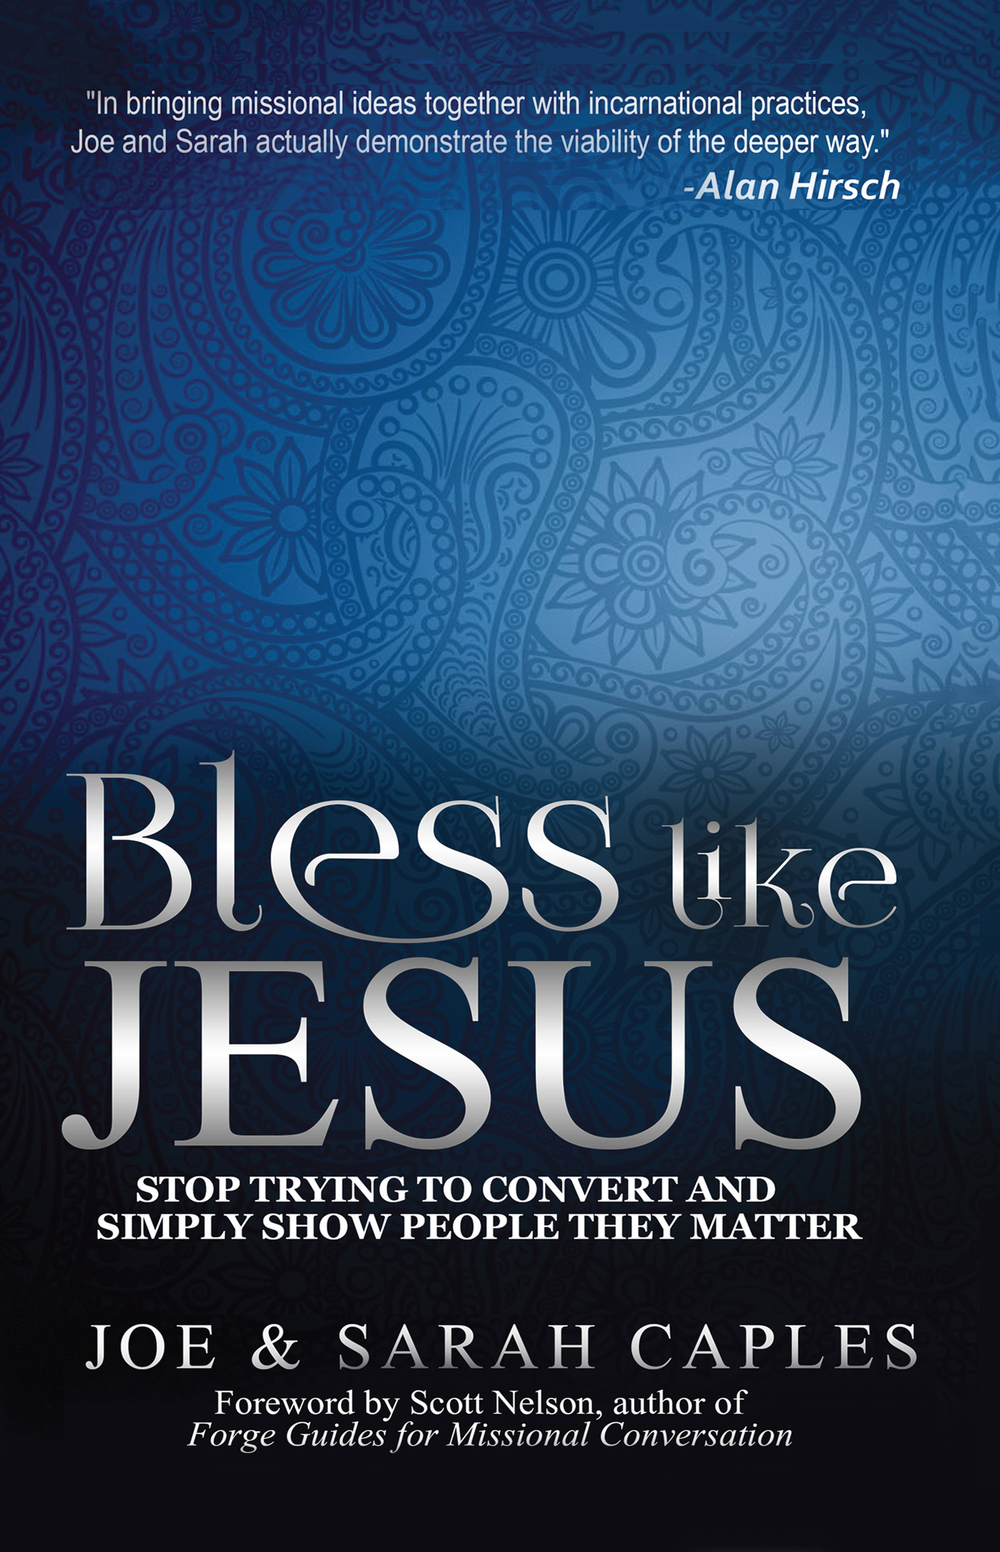 Bless Like Jesus by Joe and Sarah Caples